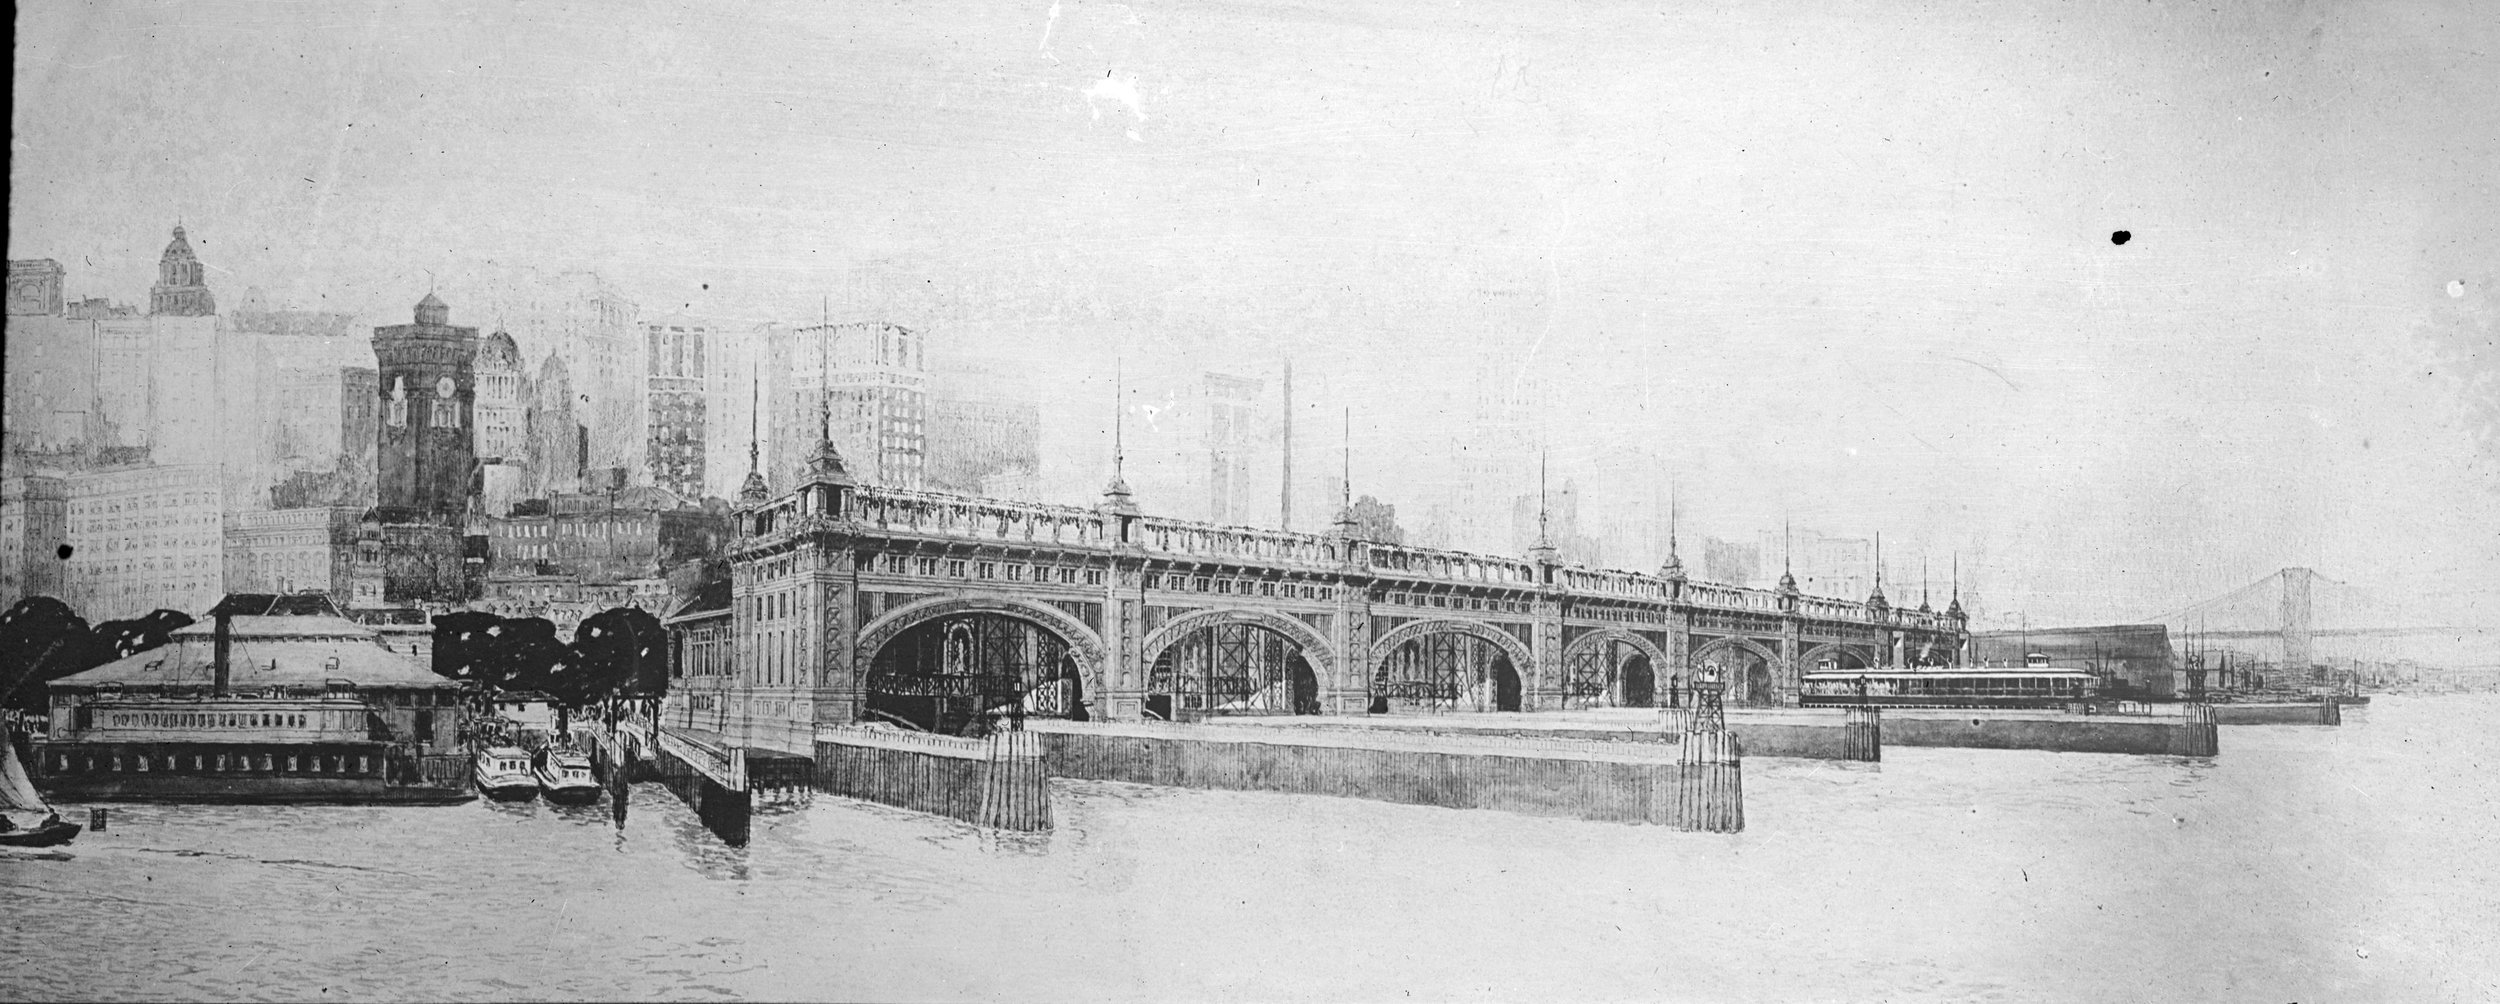 Perspective drawing of the Municipal Ferry Terminal, undated. In the original design, the terminal had two buildings, one with two slips going between Whitehall-Saint George (opened in 1906), and the other for the 39th Street Ferry that went to South Brooklyn (opened in 1909). It is now called the Battery Maritime Building and was listed on National Register of Historic Places in 1976.